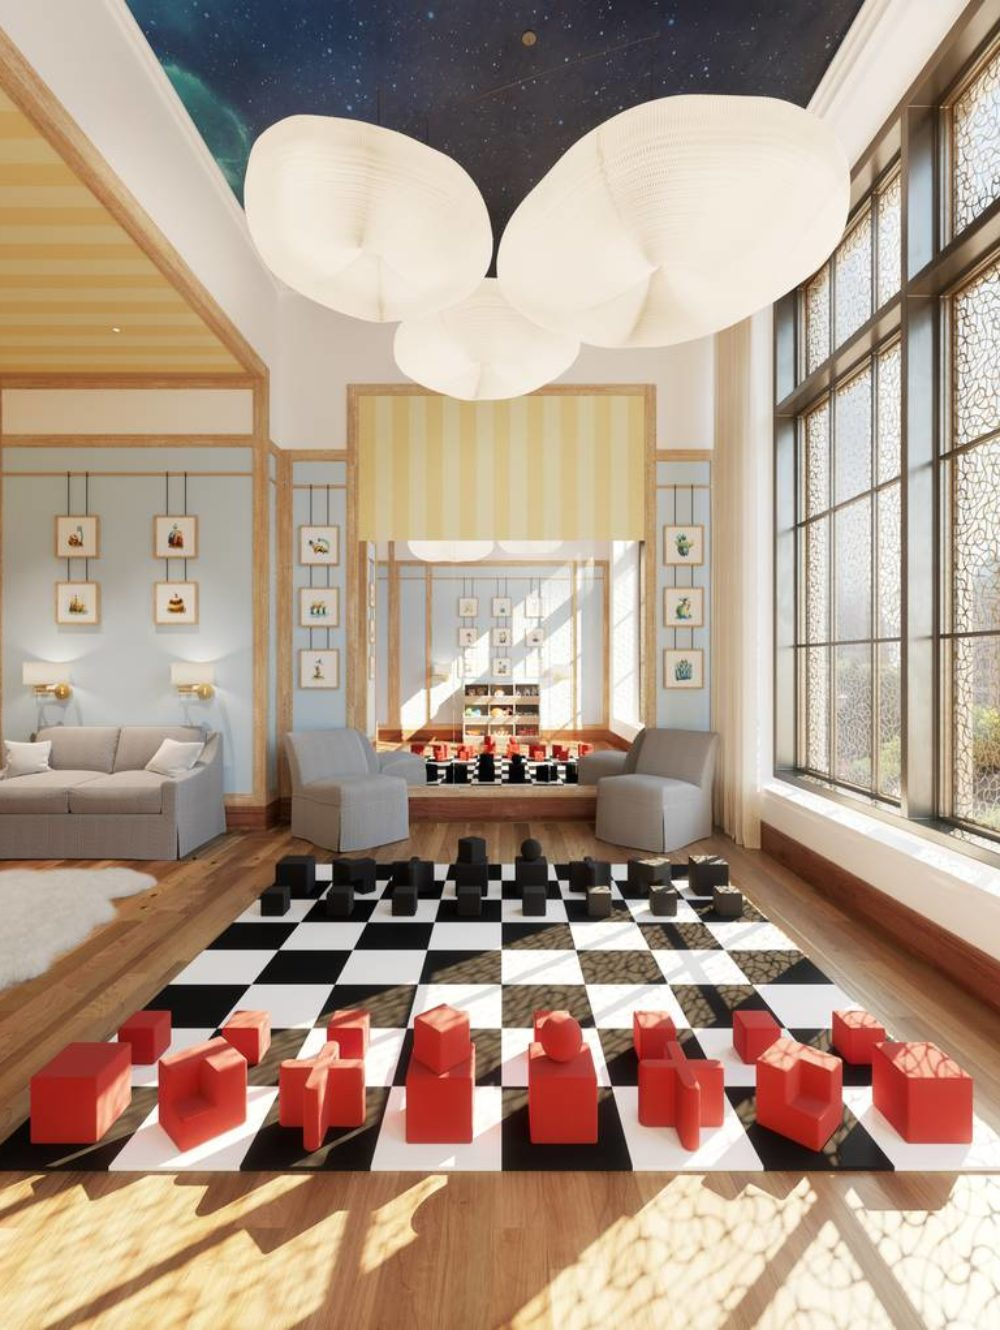 Interior view of kids room inside 25 Park Row condominiums with window view of NYC and giant sized chess board in the center.